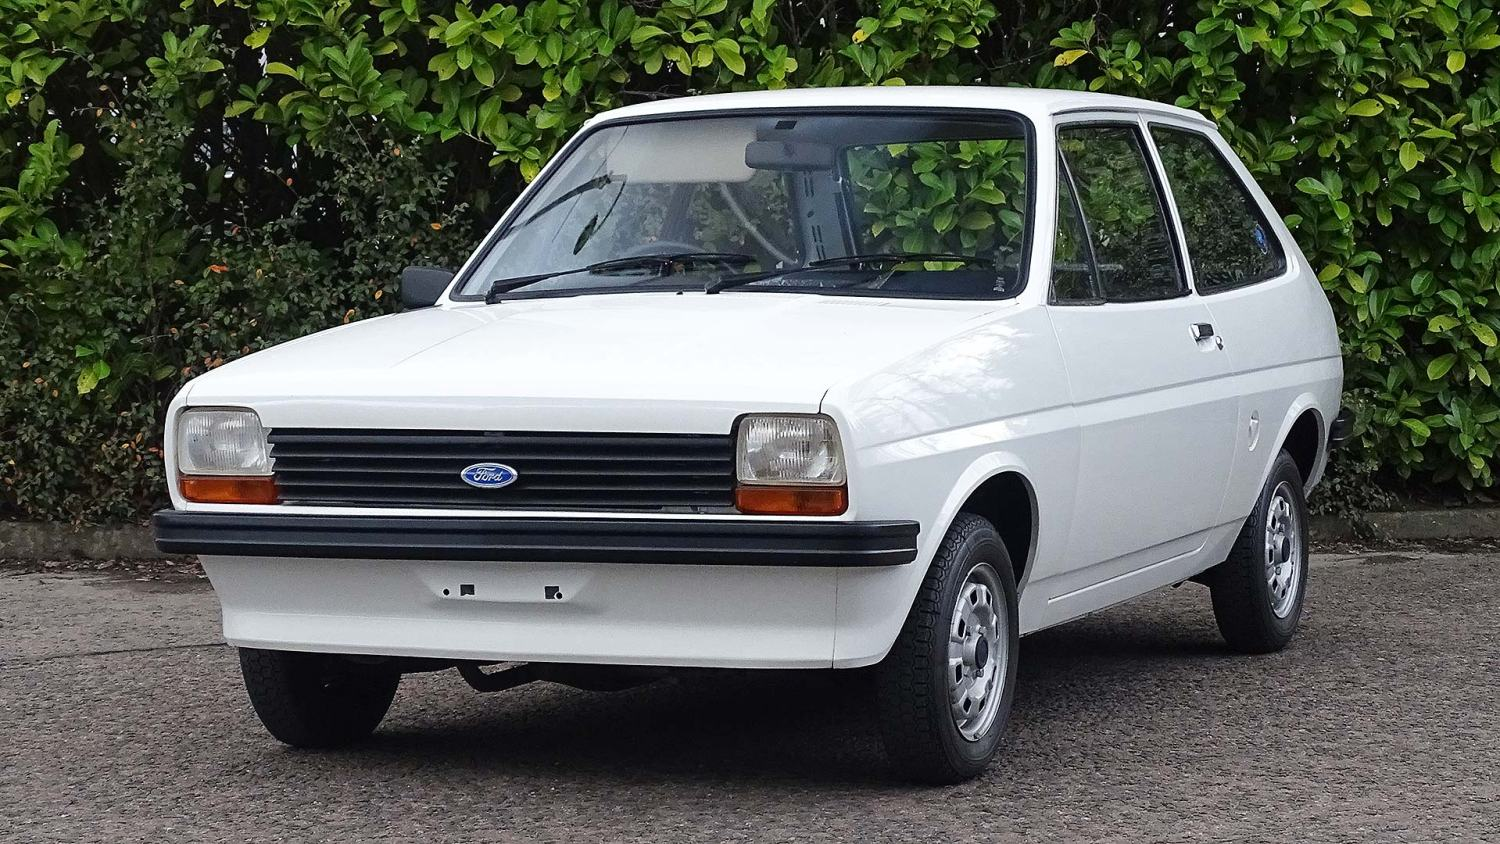 Ford Ford Auction >> This Timewarp 1978 Ford Fiesta Has Covered Just 141 Miles